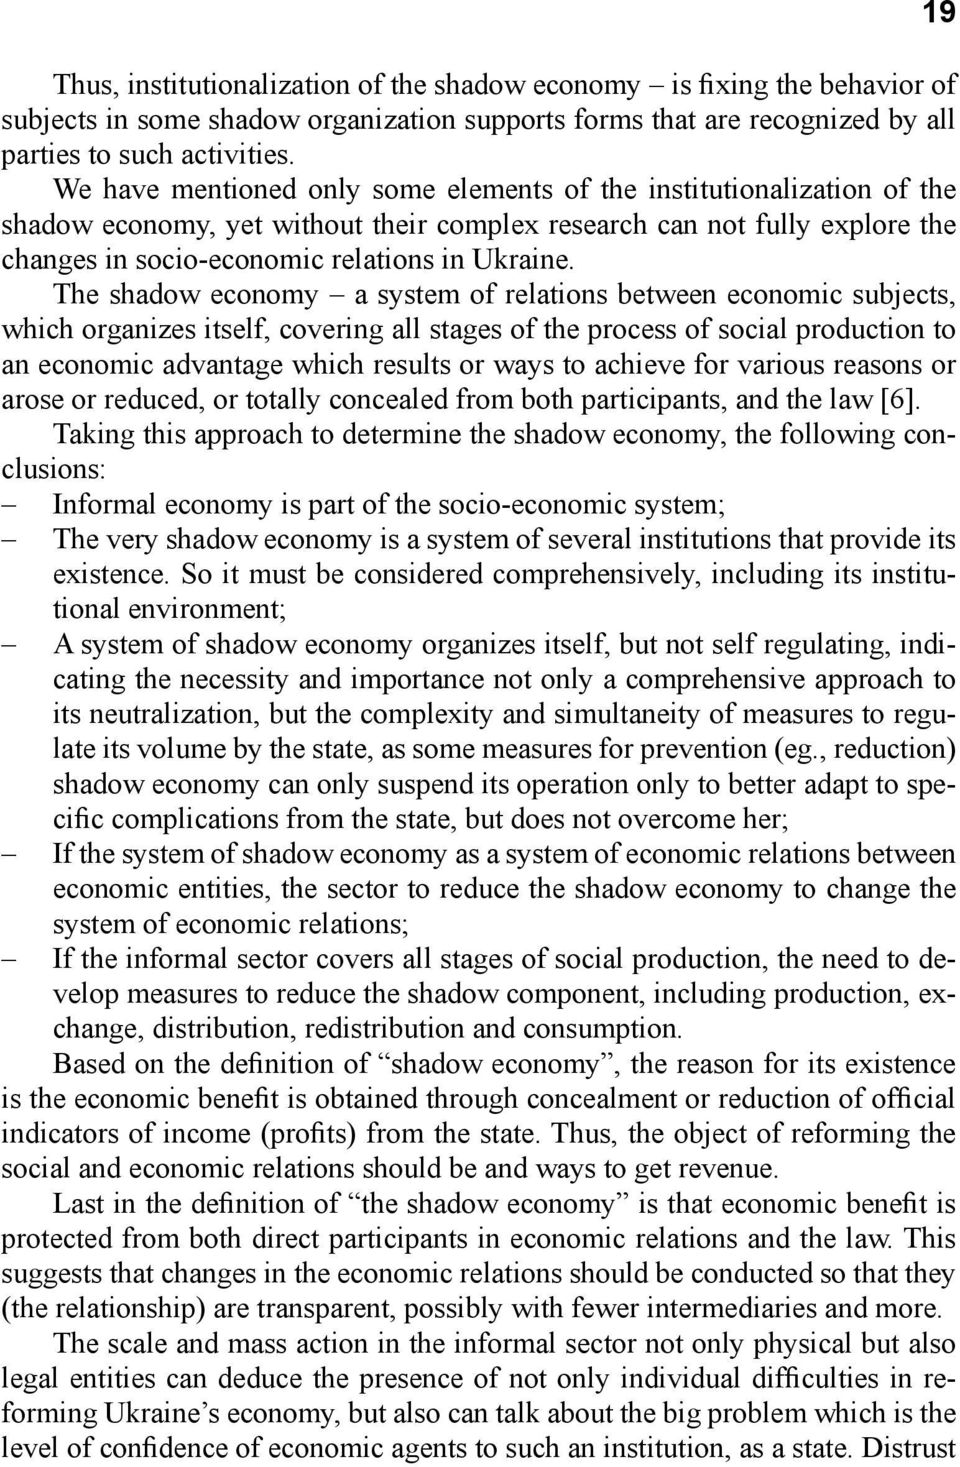 The shadow economy a system of relations between economic subjects, which organizes itself, covering all stages of the process of social production to an economic advantage which results or ways to